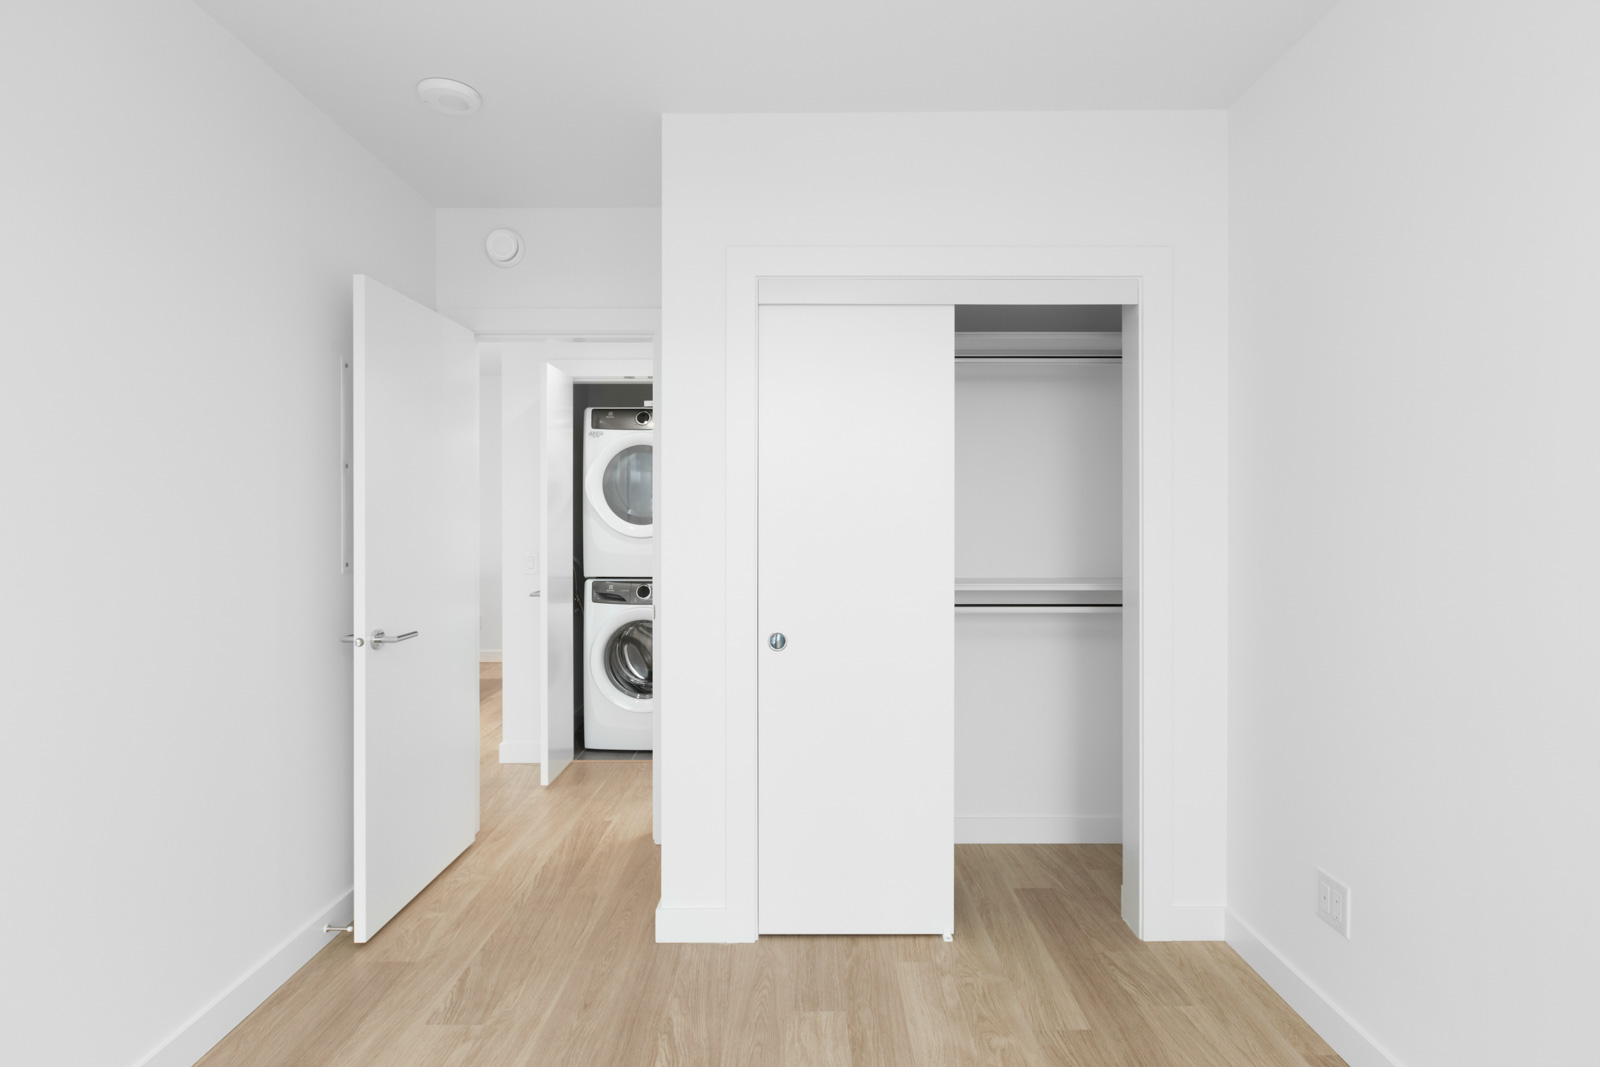 view in bedroom of opened closet space on right and opened laundry closet in background on left with stacked white washer and dryer